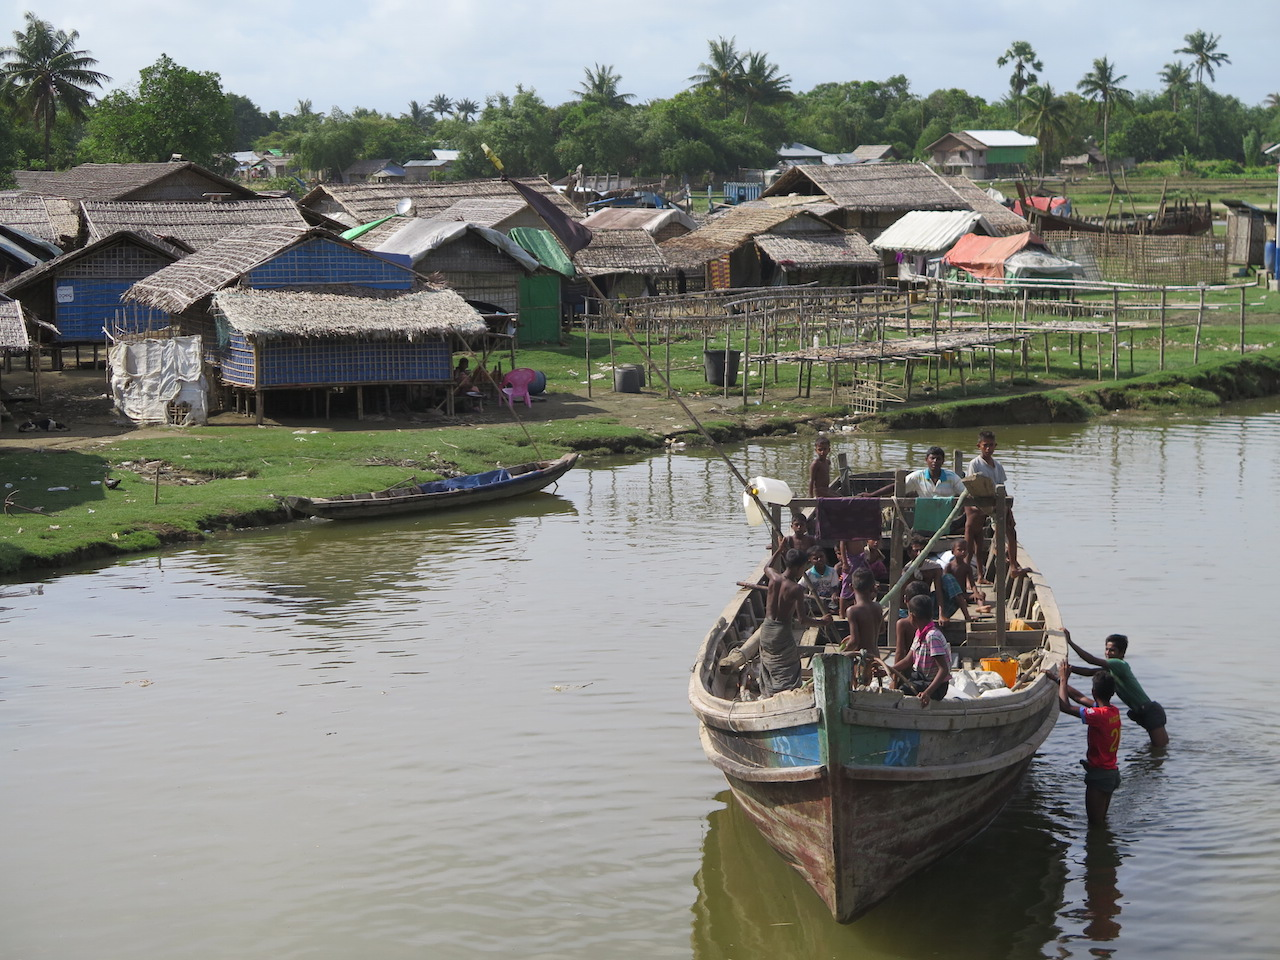 Camp for displaced Rohingya in Myanmar's Rakhine state